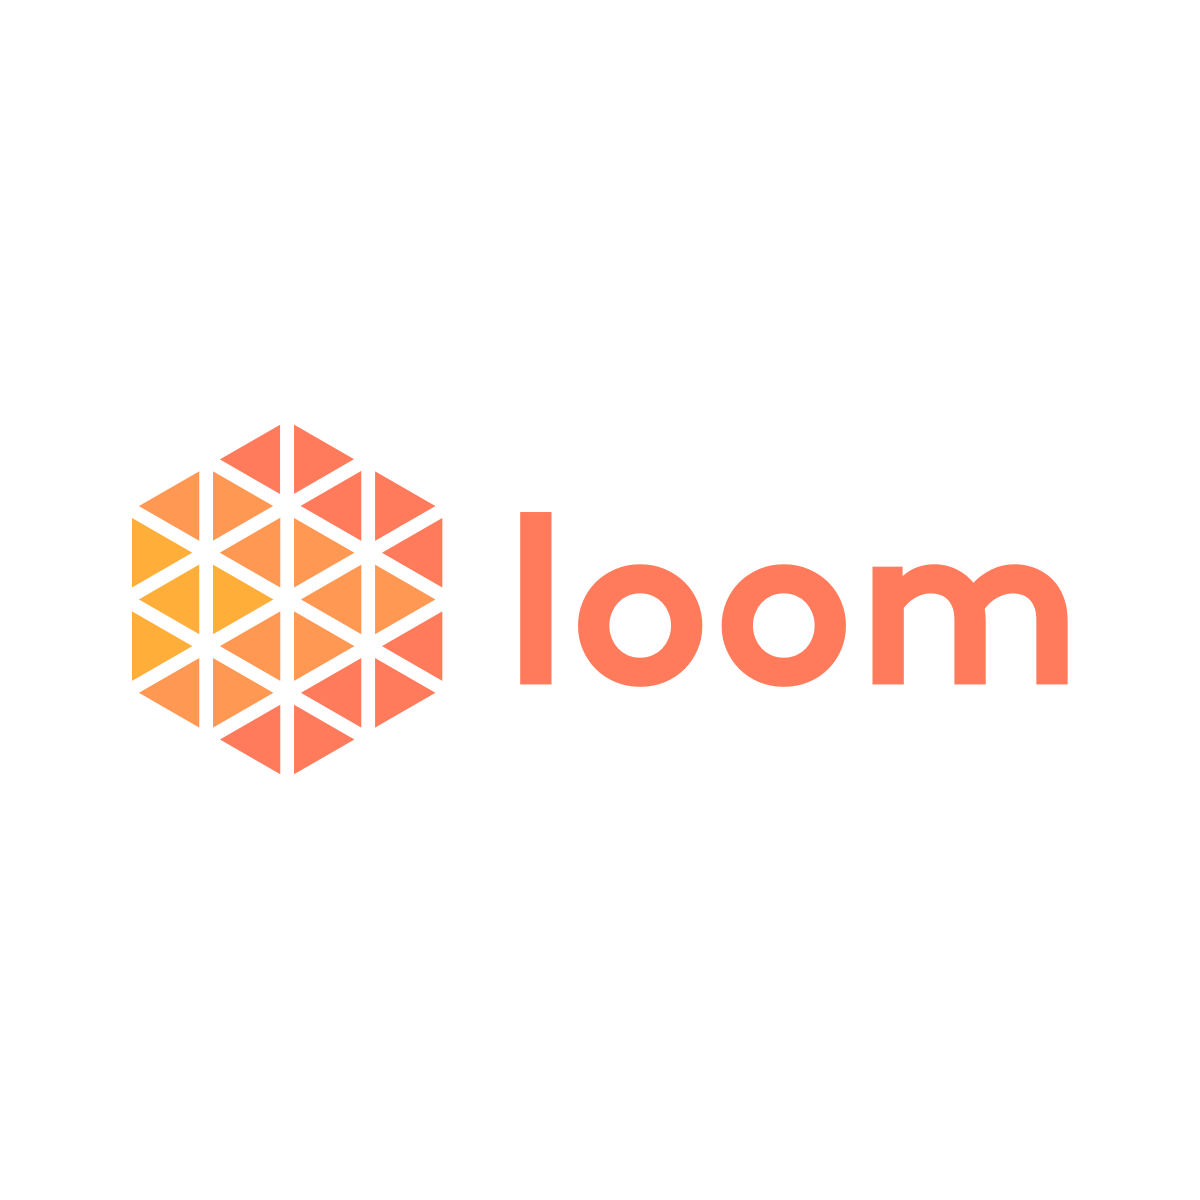 Recording screen png. Loom video sharing amazingly